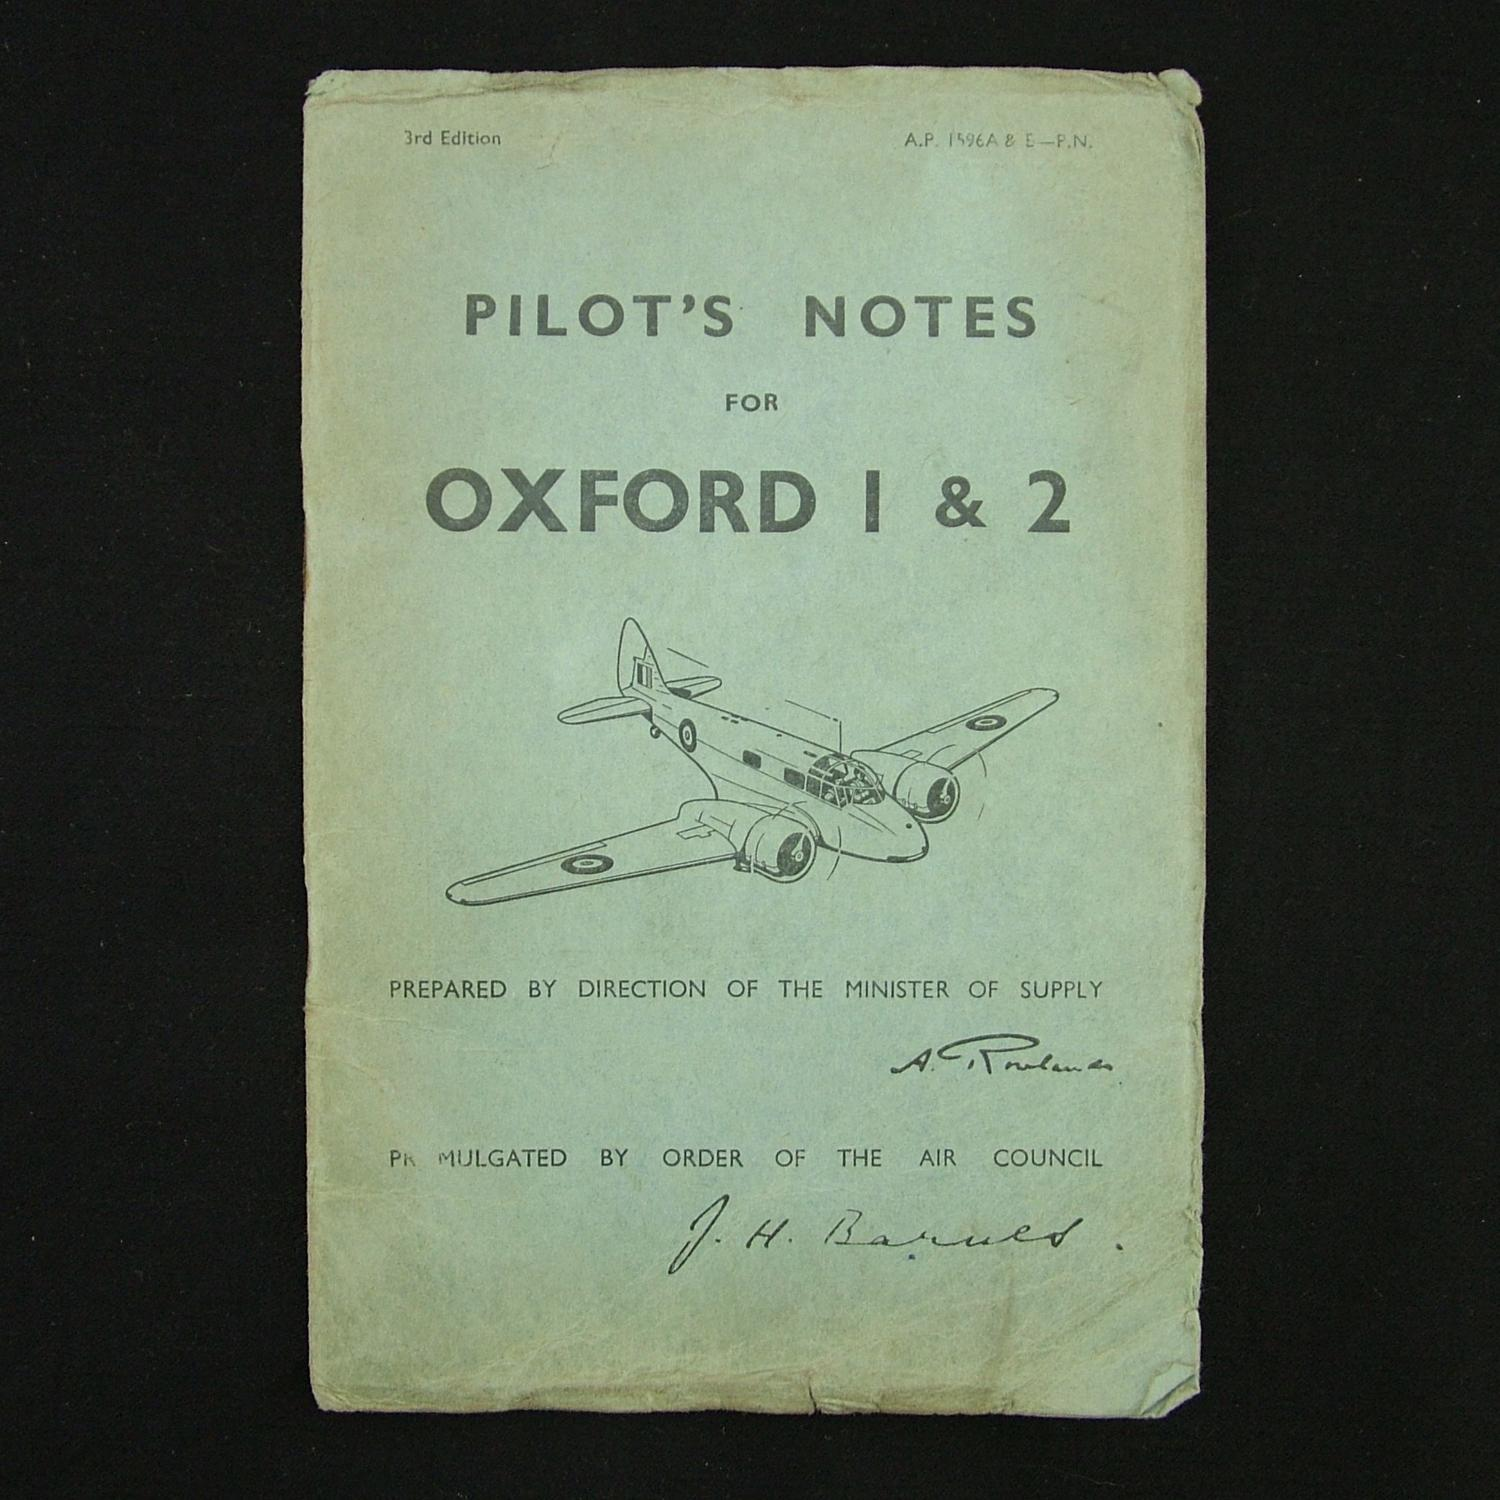 RAF pilot's notes - Oxford I & 2